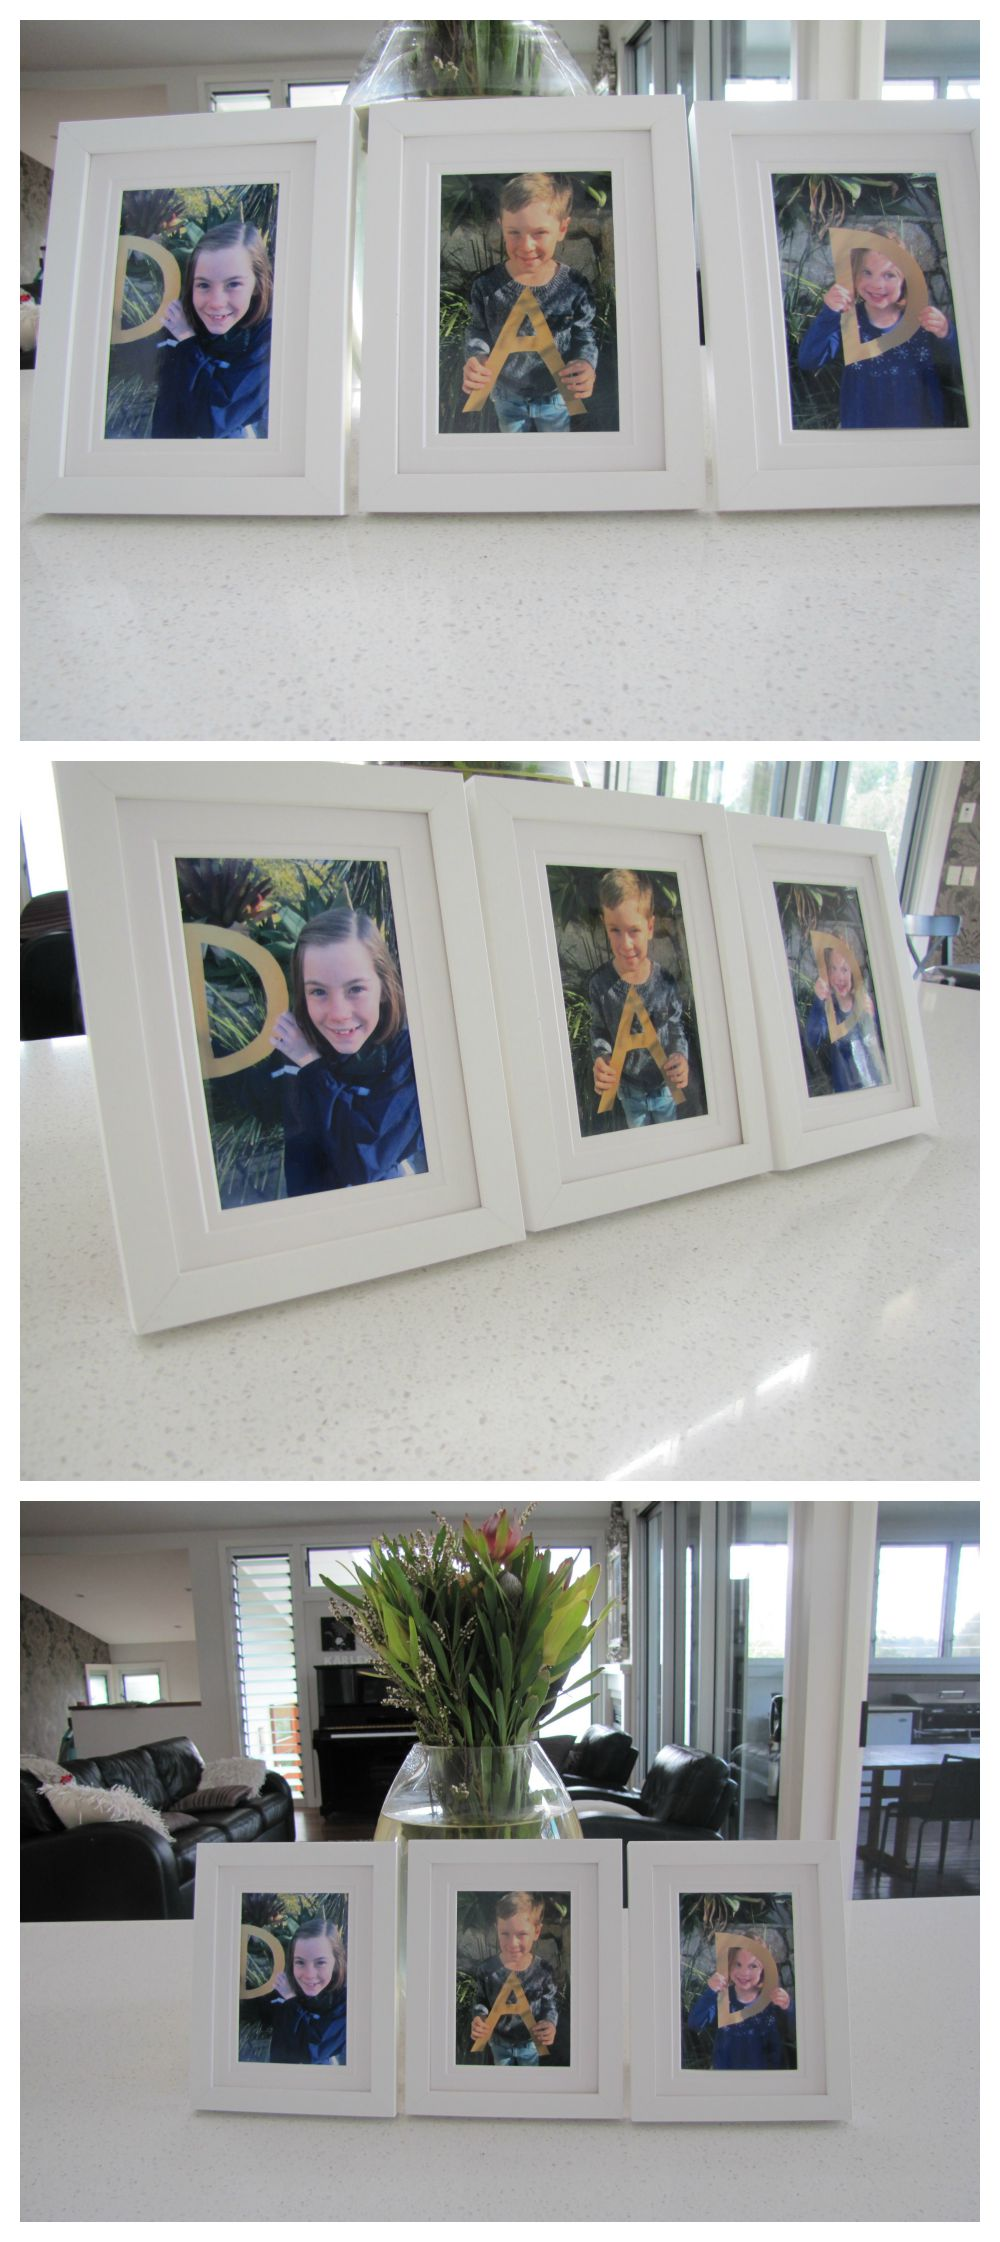 DAD Picture in 3 Frames